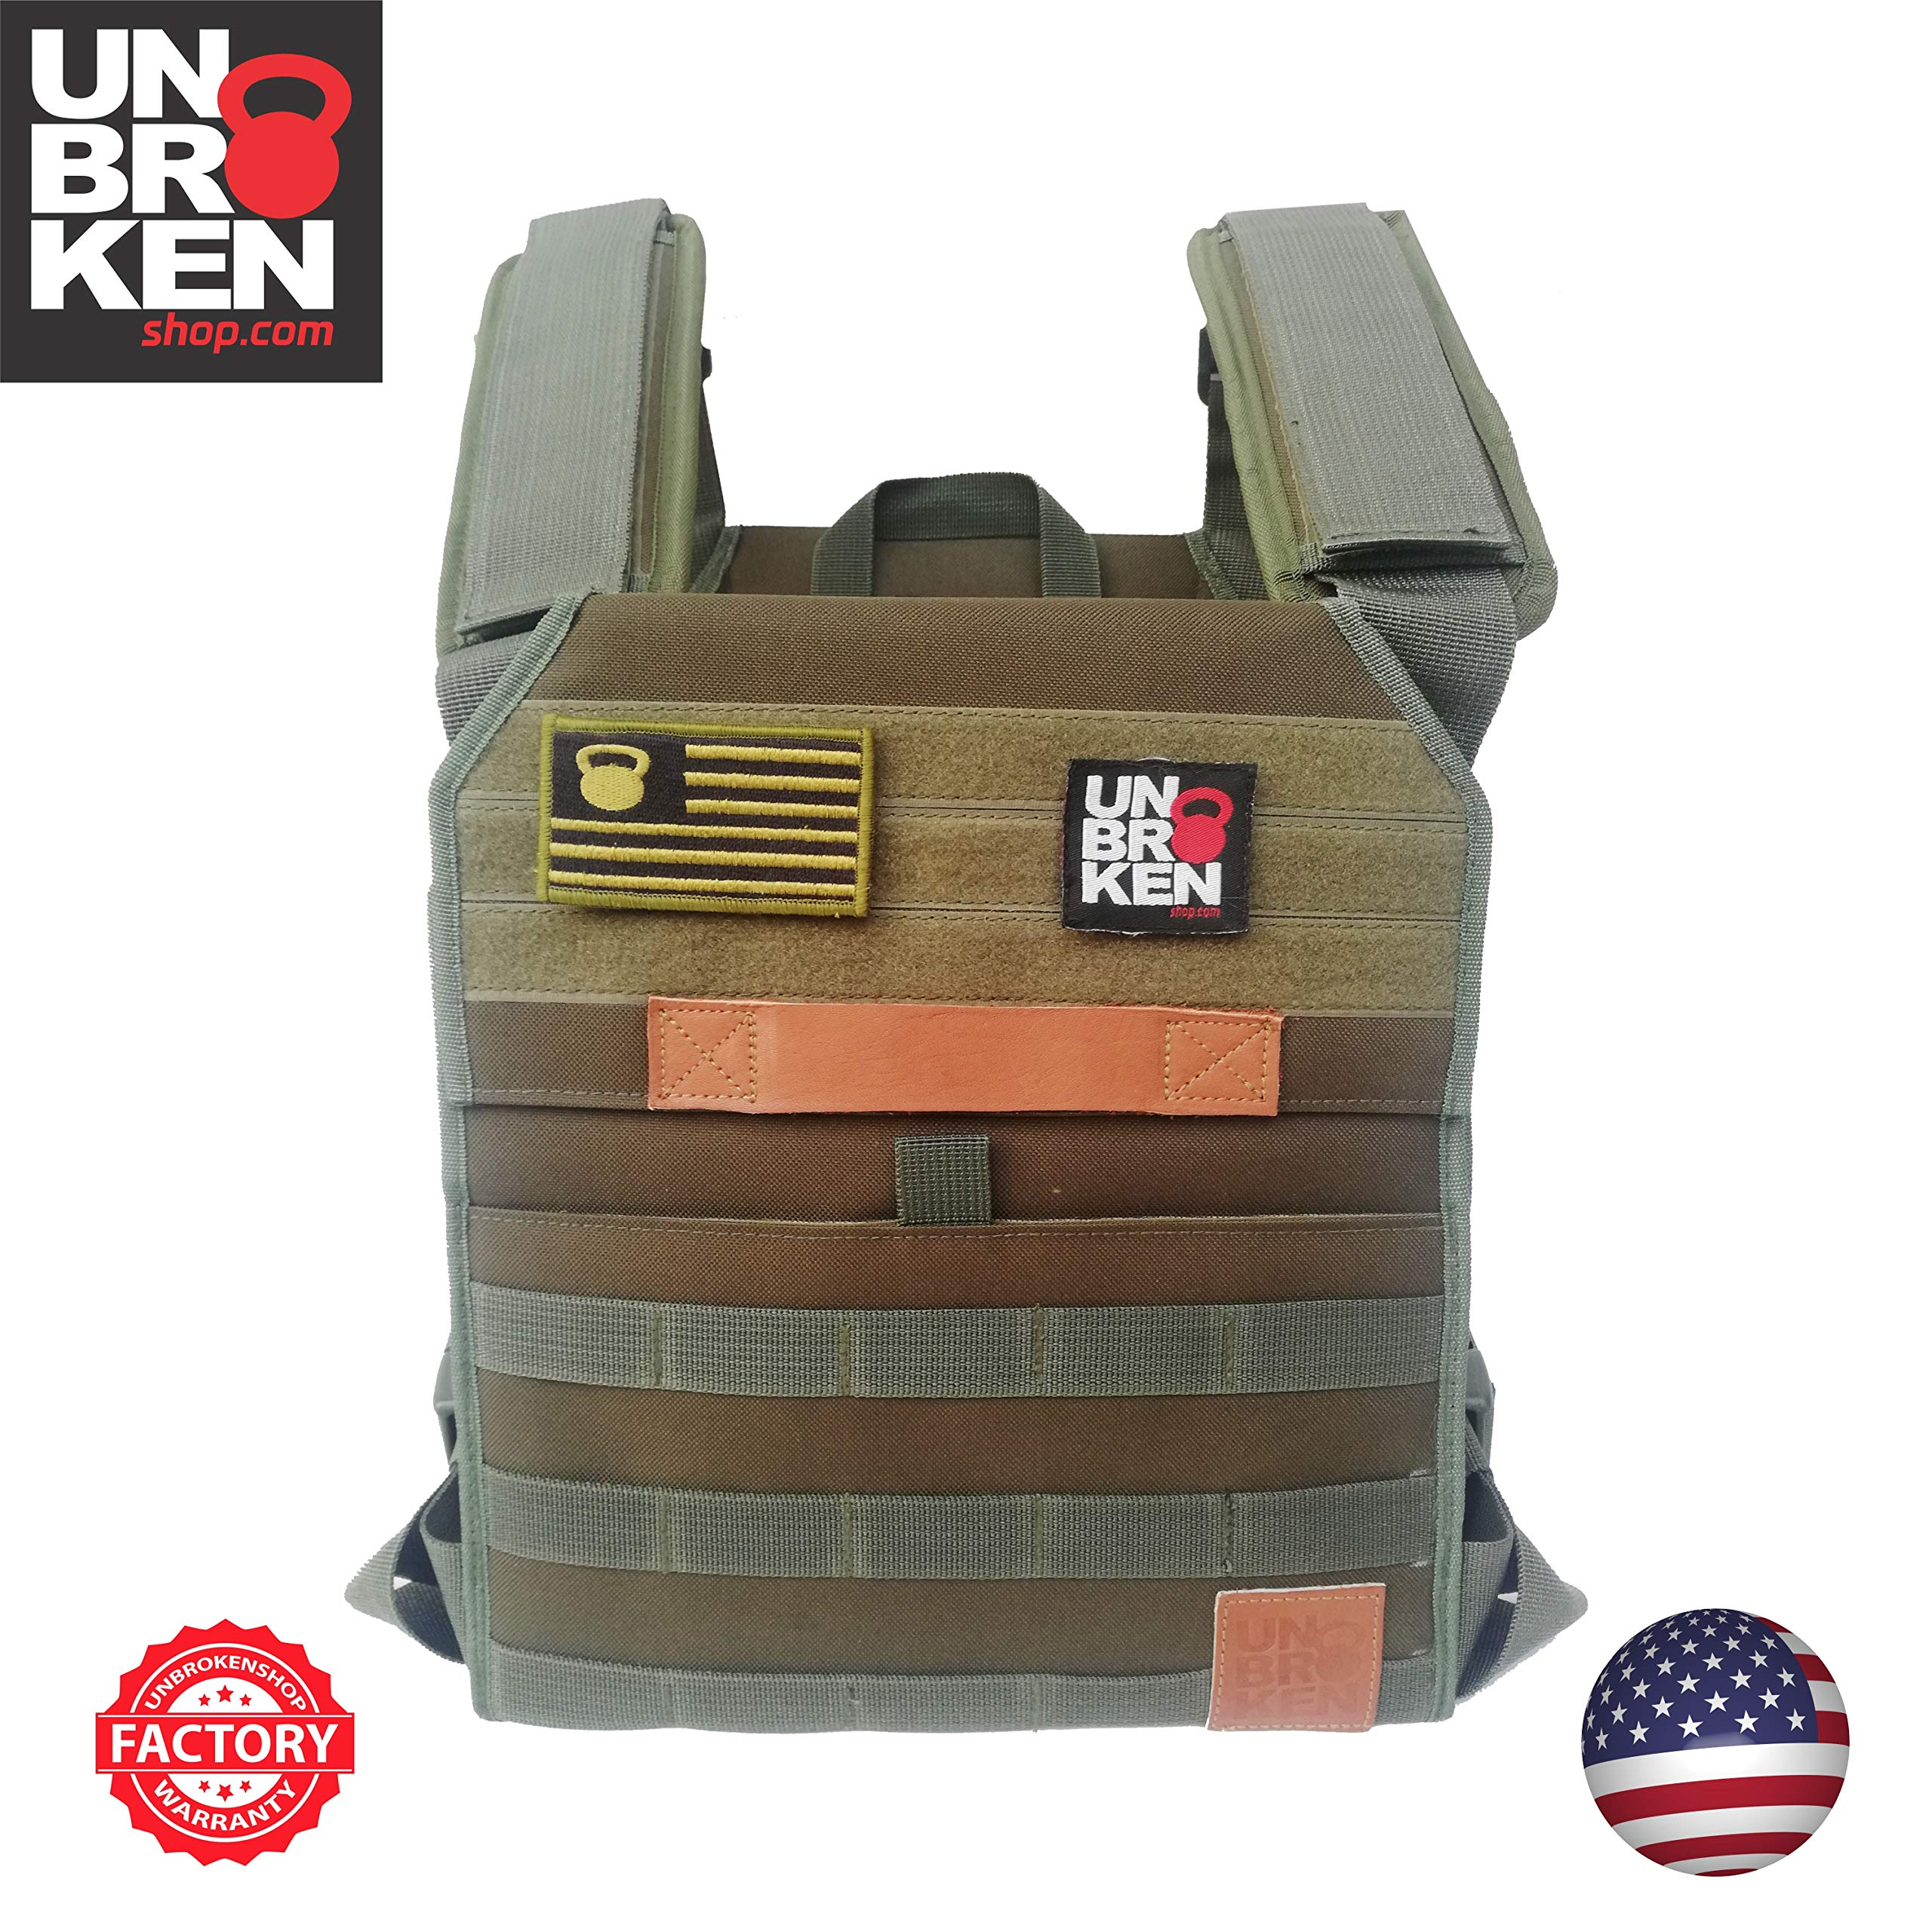 Plate Carrier Vest up to 20lbs Gymnastic or Rope climbs.Chaleco Colette Perfect for Crossfit Unbrokenshop.com Weight Vest for WOD